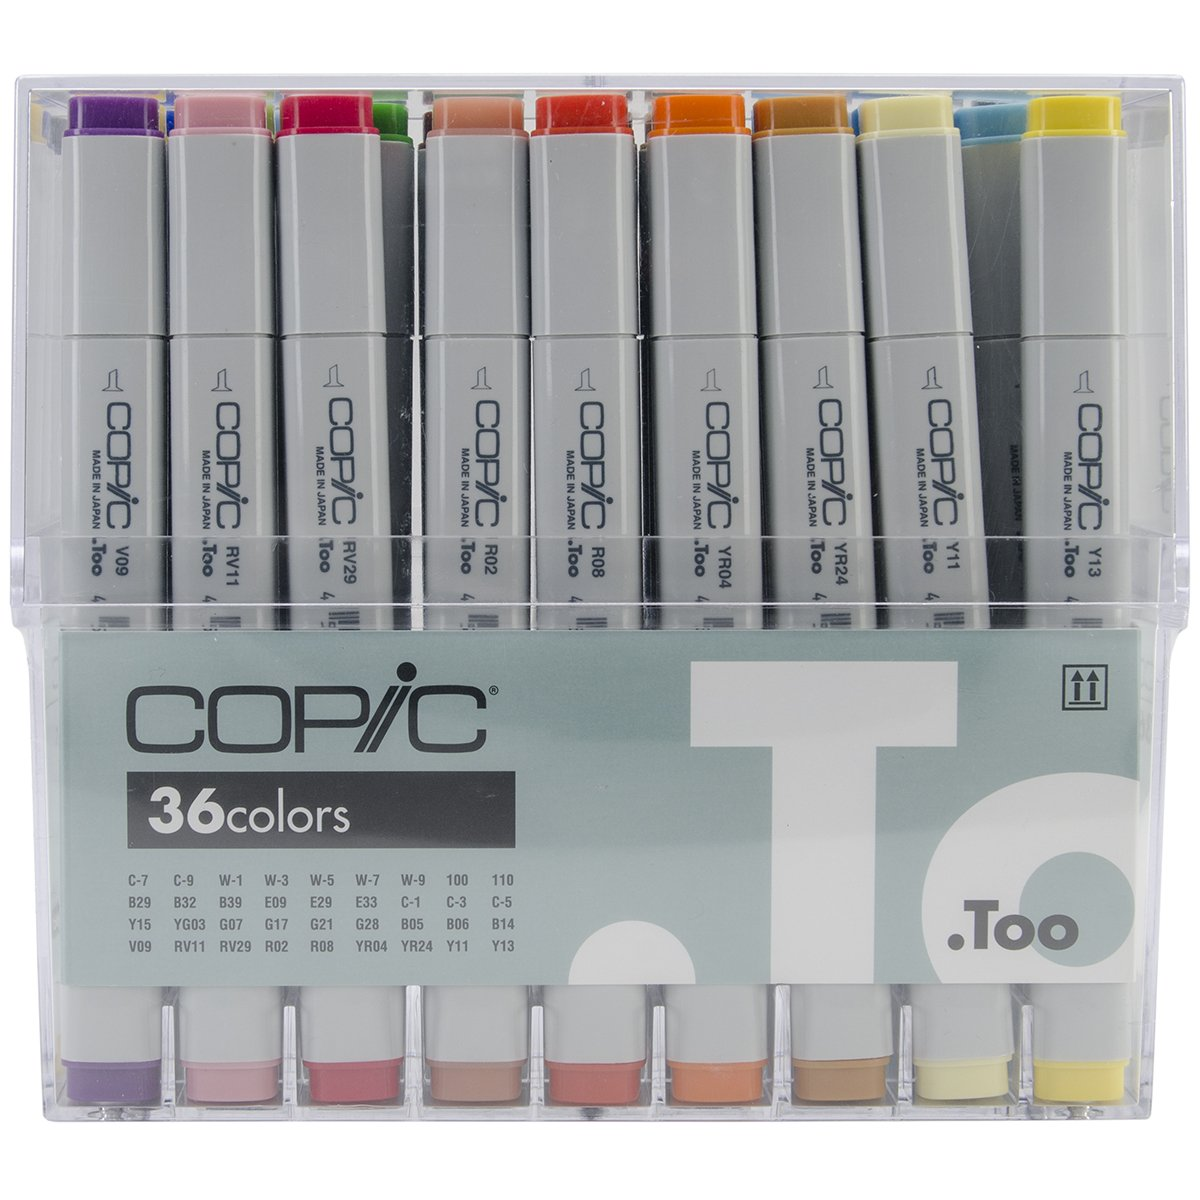 Copic Marker 36 Piece Original Basic Marker by Copic Marker